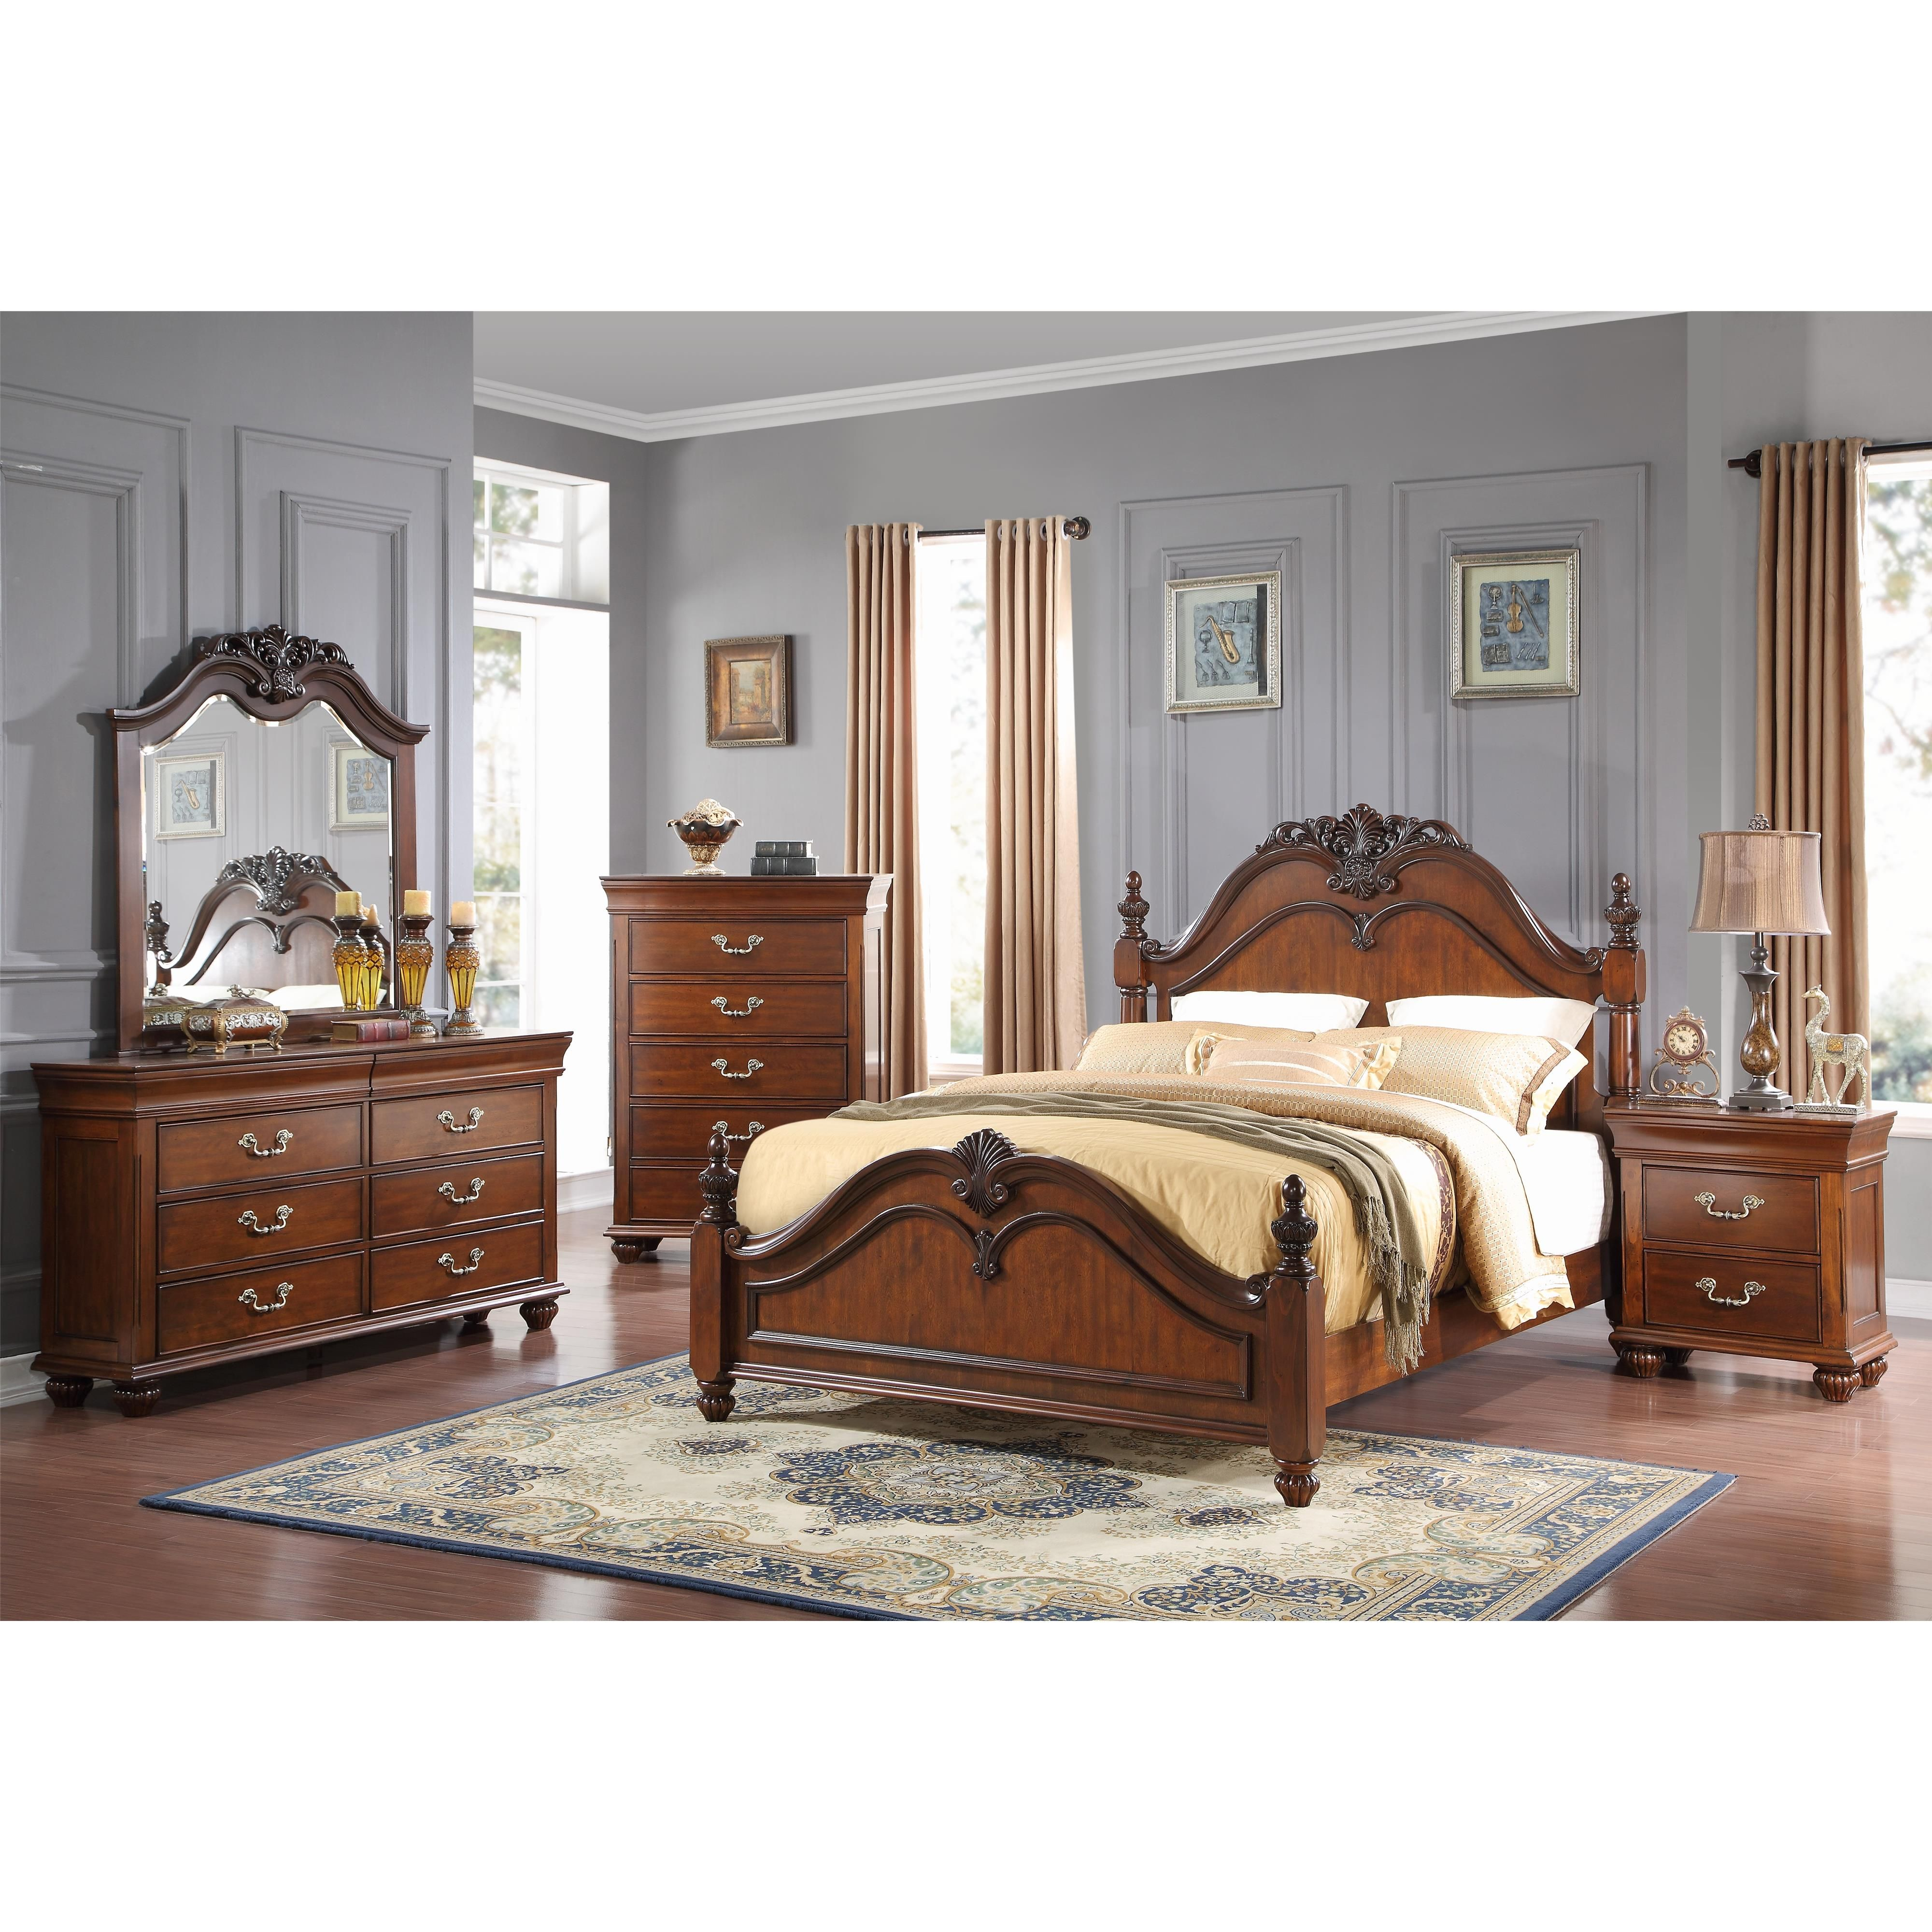 Pin by Heather Wilson on HOUSE IDEAS King bedroom sets